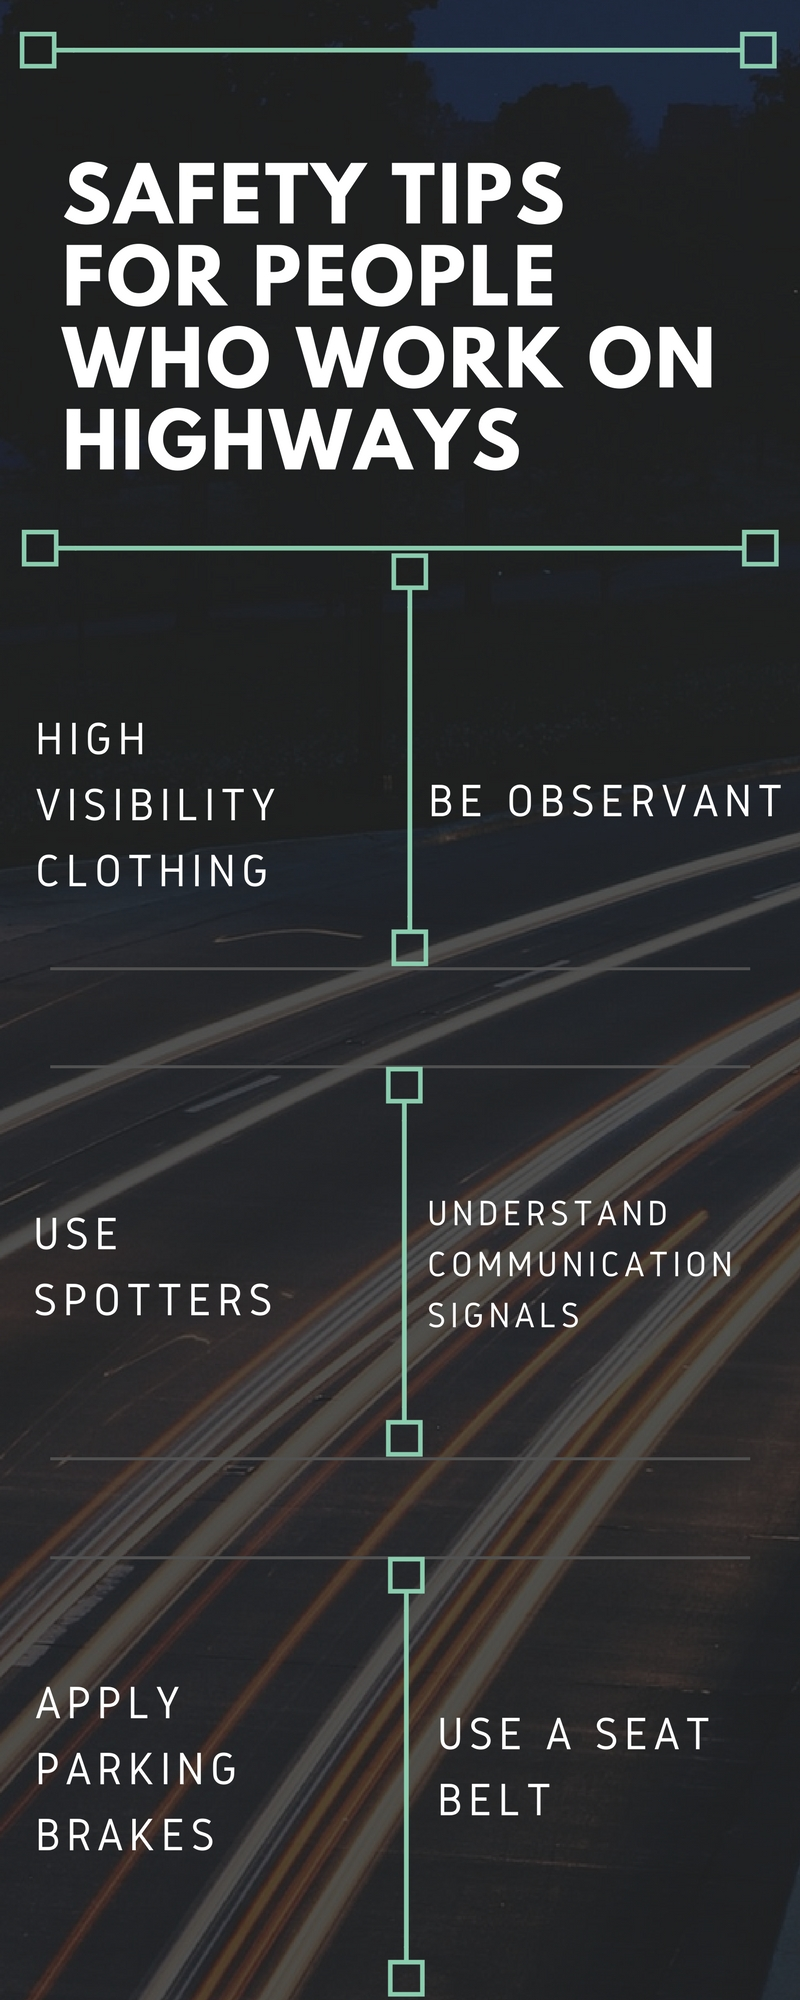 Road Construction Work Zone Safety Tips